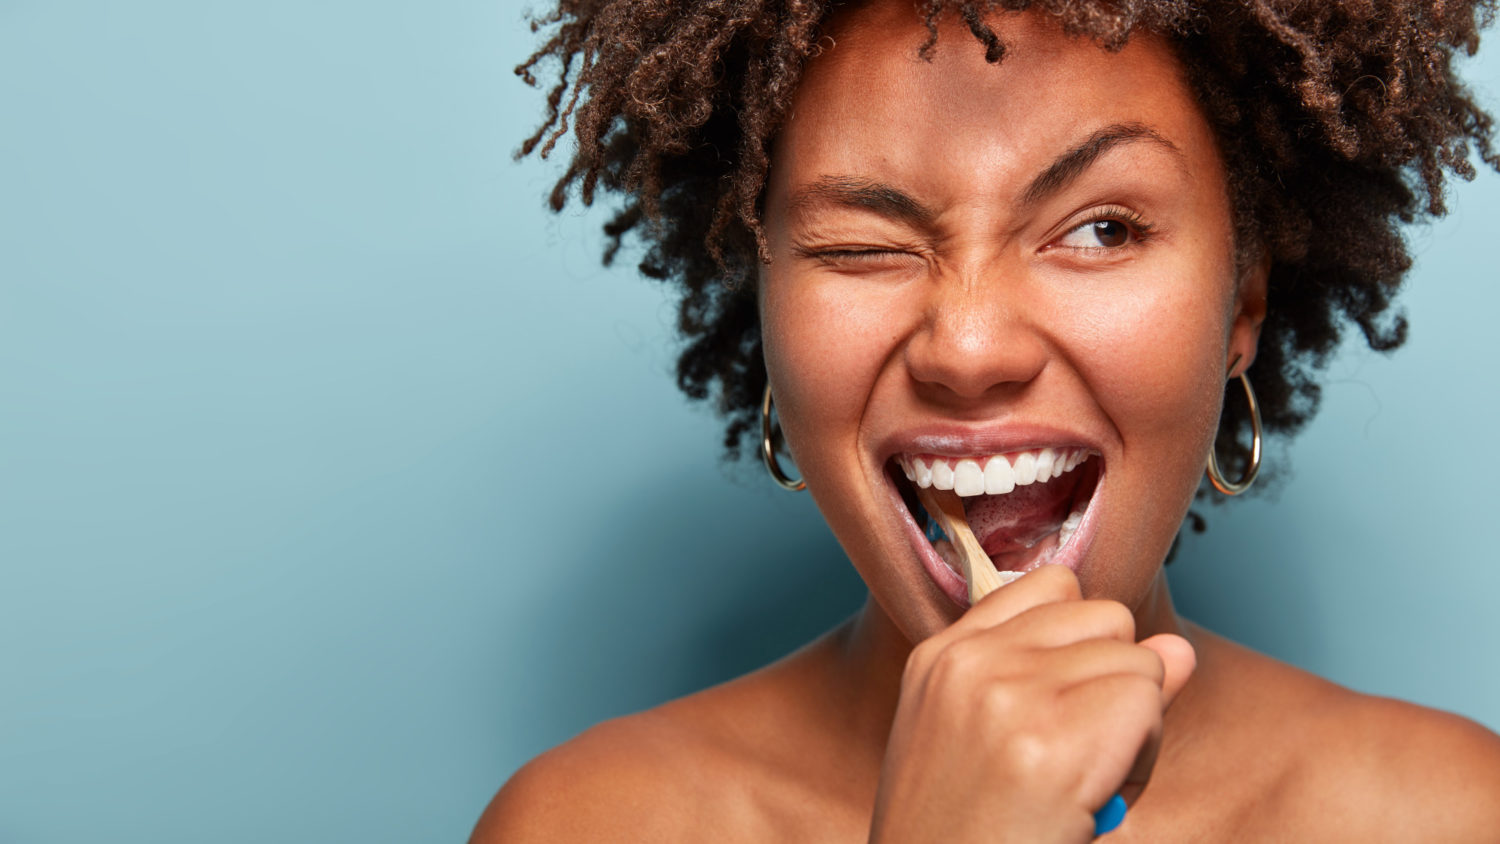 How To Brush Your Teeth: The Proper Techniques For A Pearly Smile | Uncustomary